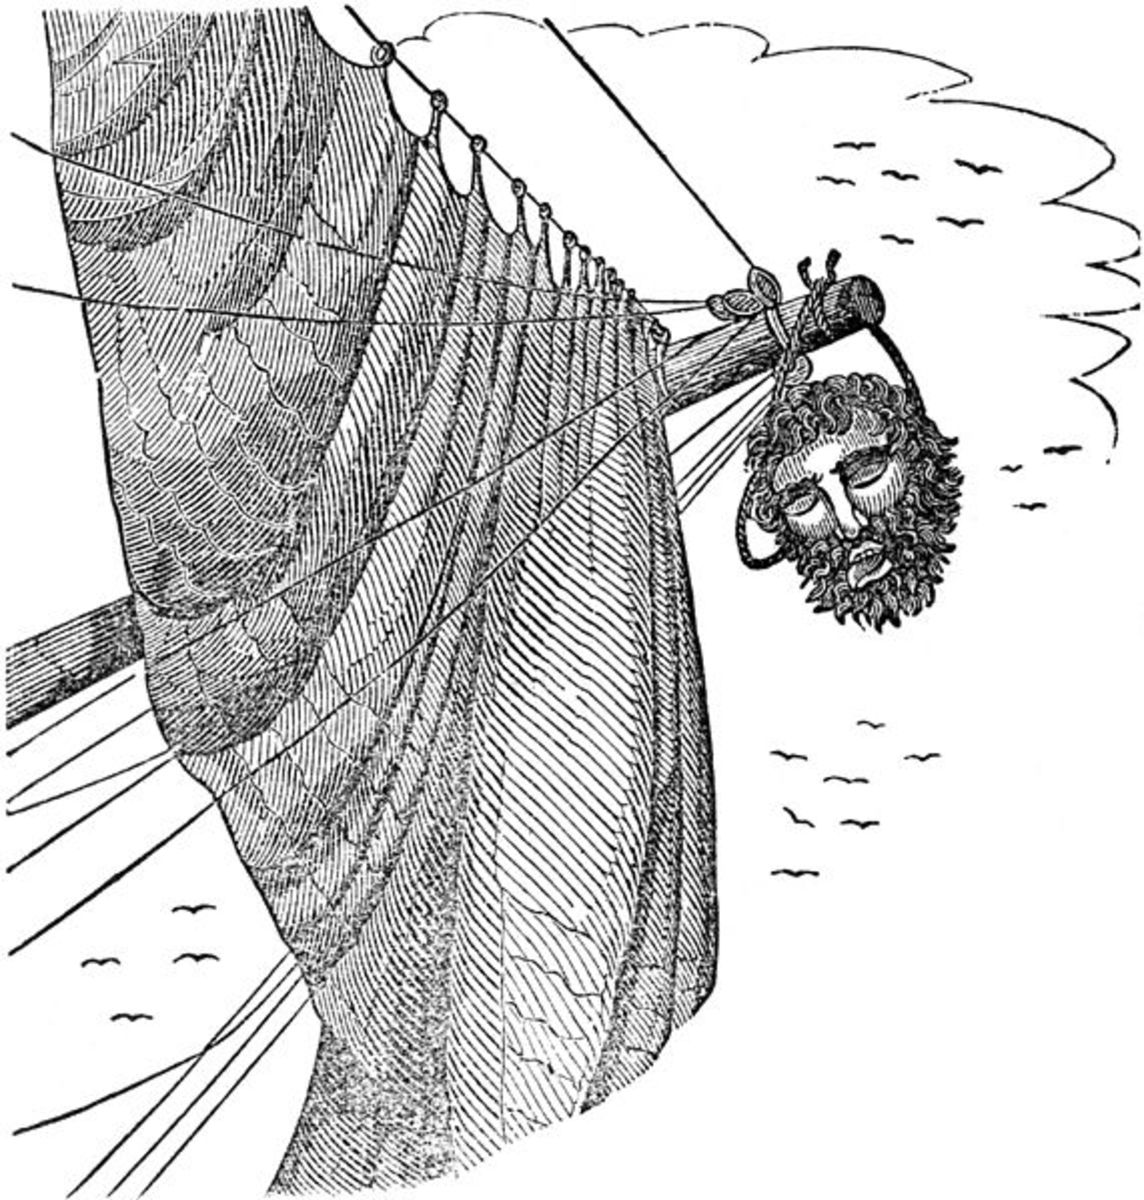 "Blackbeard's head hangs from the bowsprit. Illustration from ""The Pirates Own Book"" by Charles Ellms."